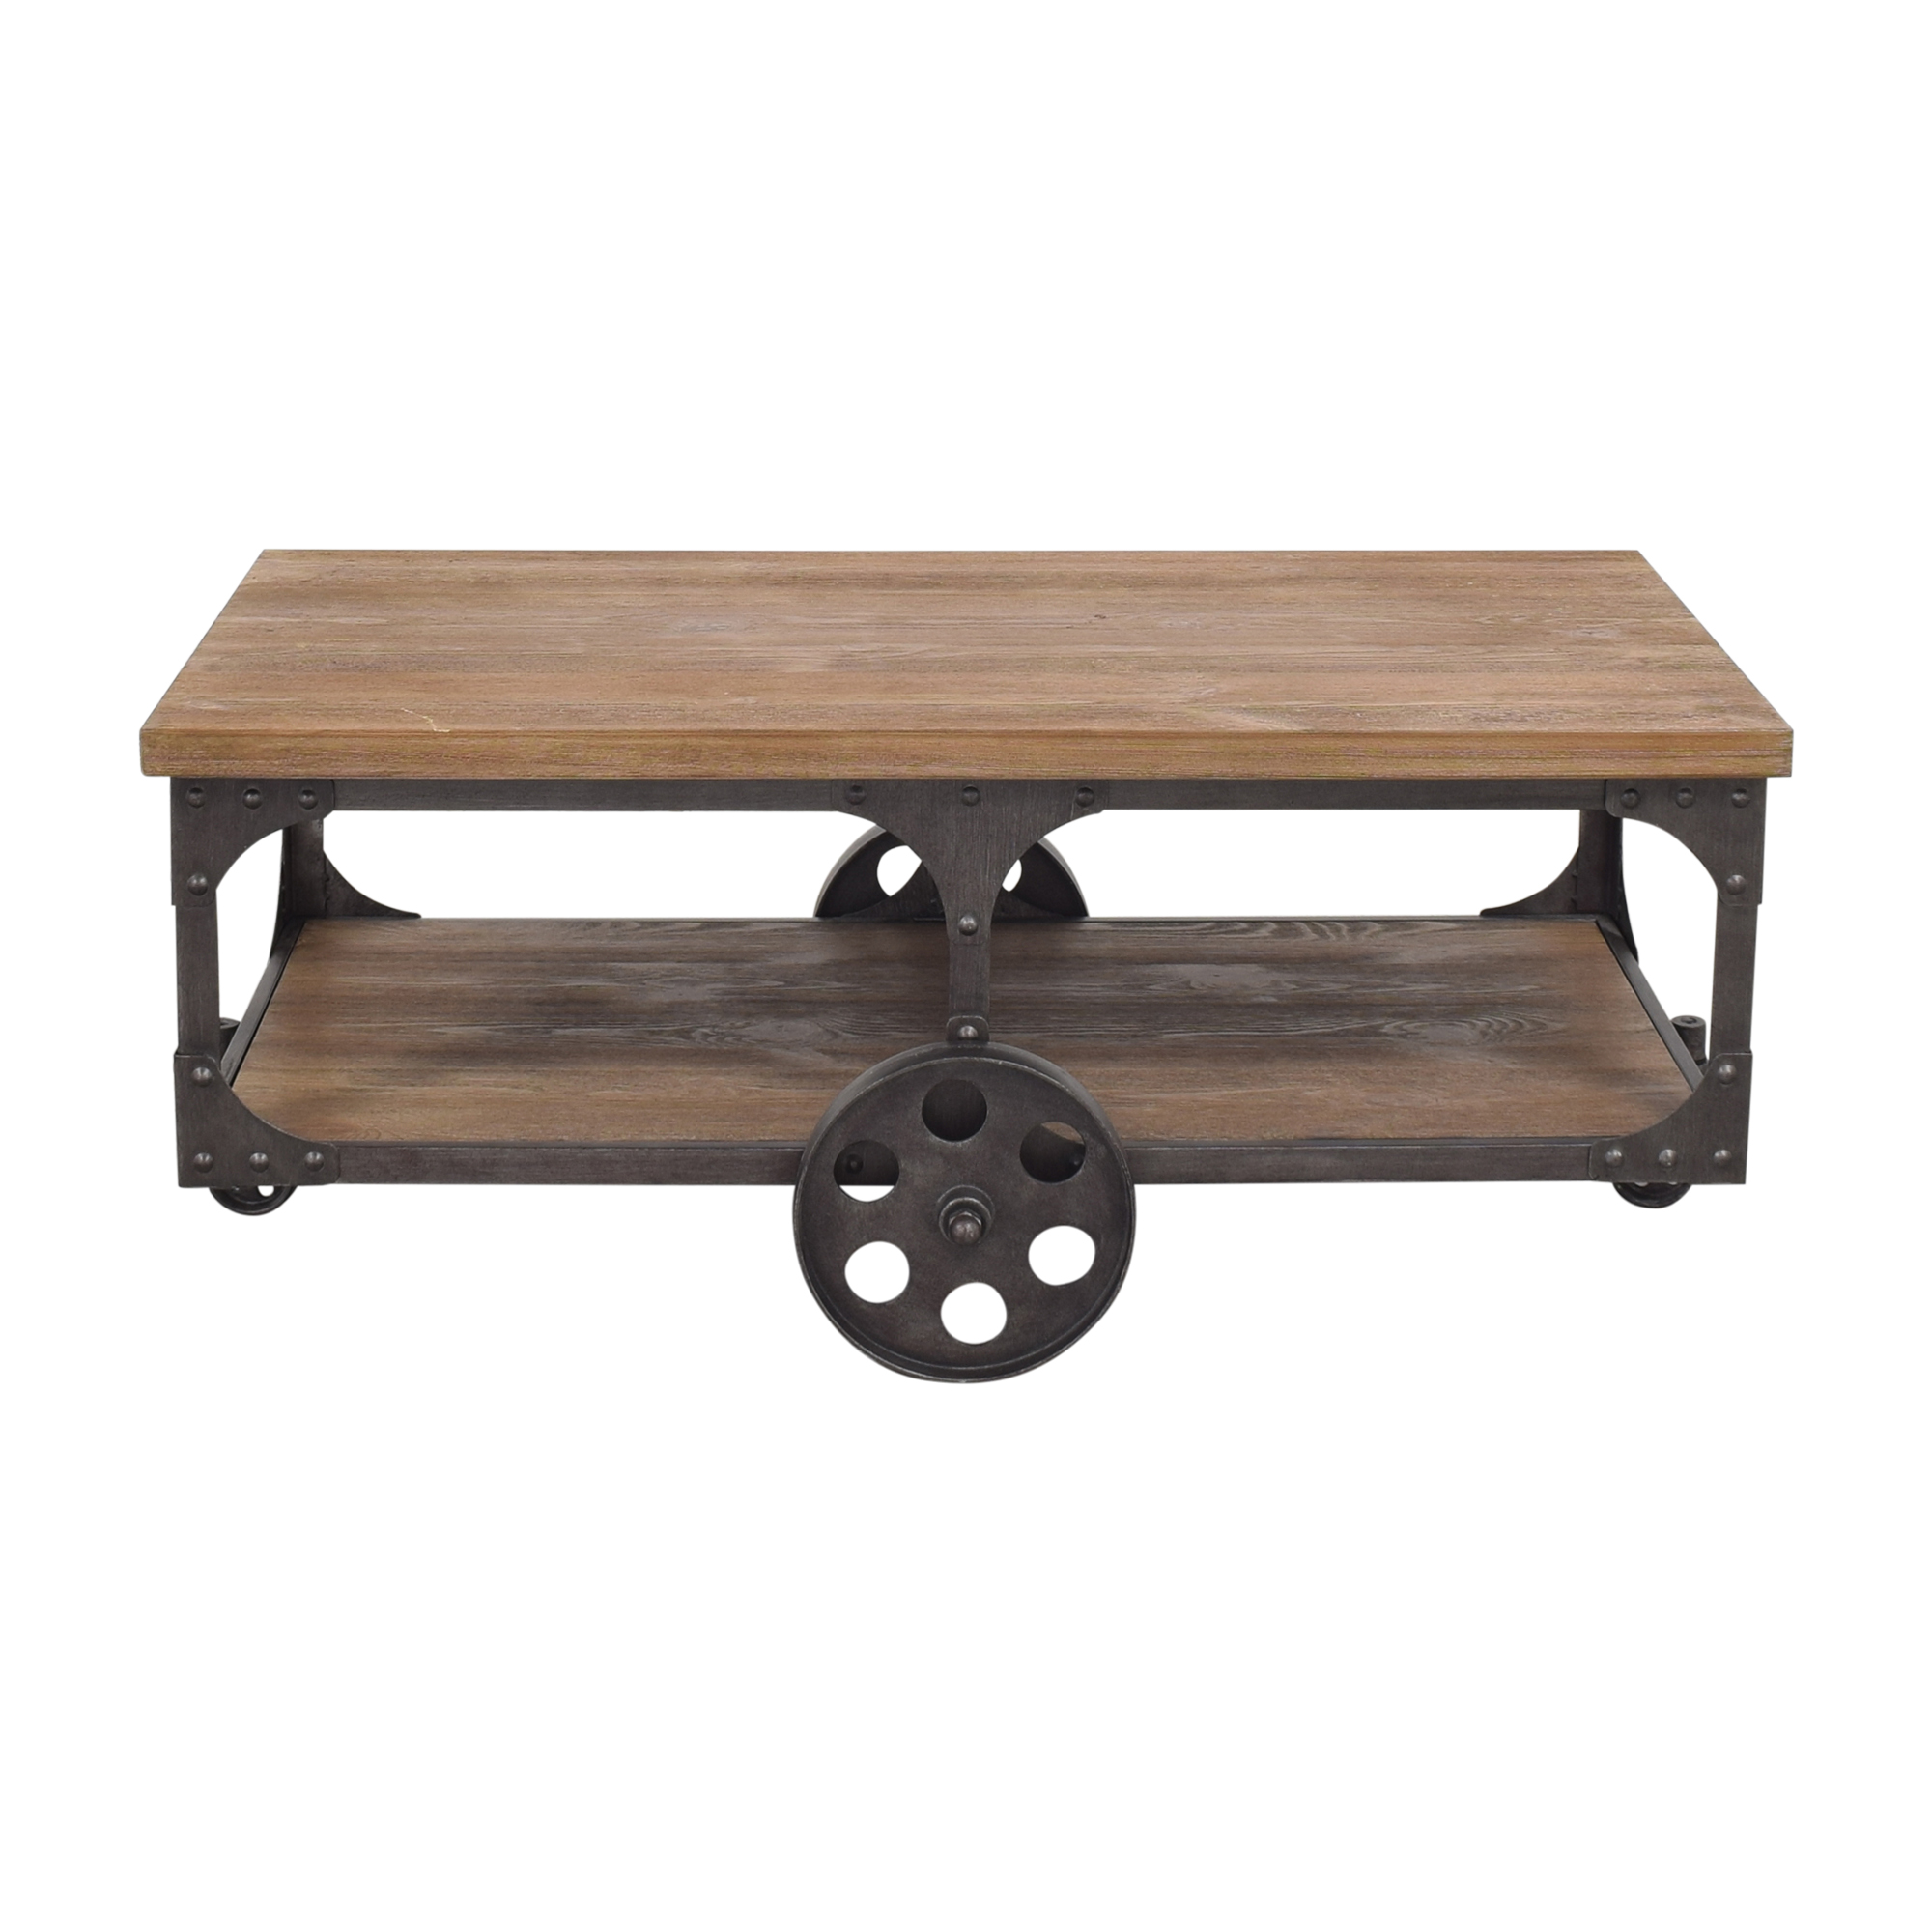 Ashley Furniture Ashley Furniture Vennilux Coffee Table price